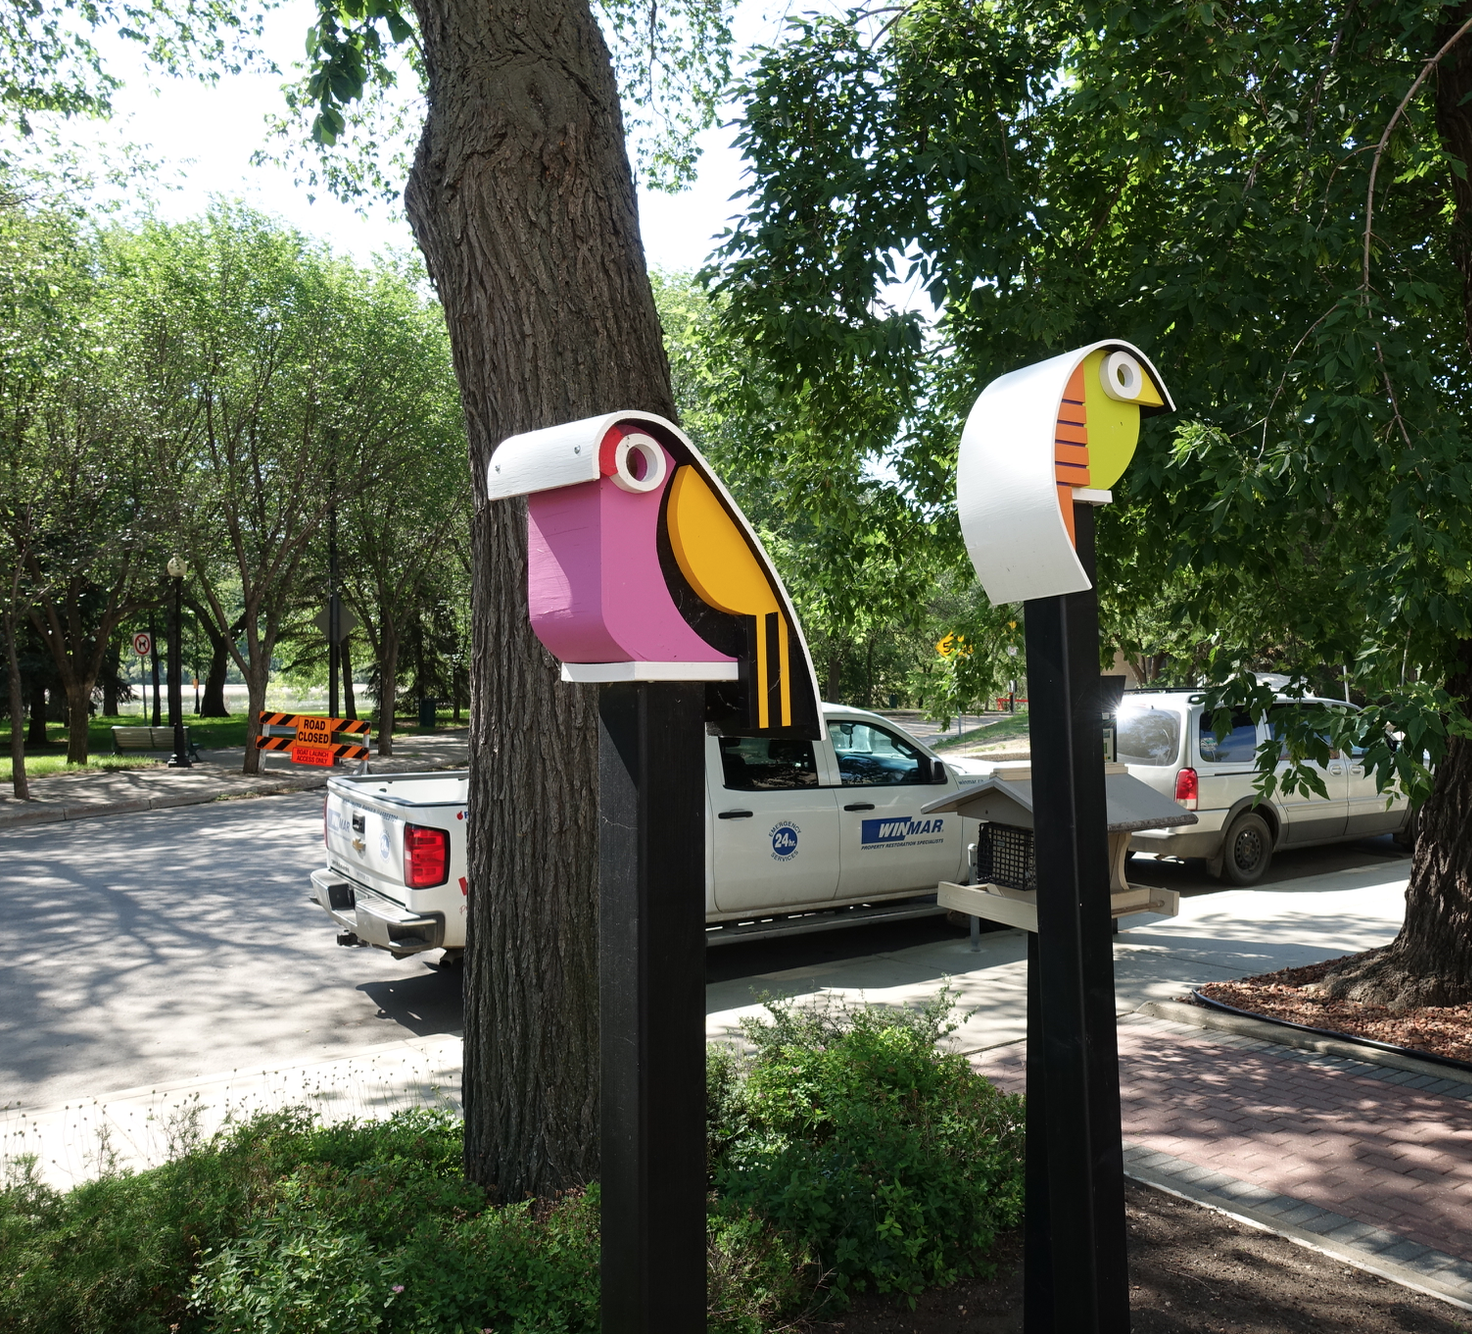 You will find these two colourful birdhouses outside of JR's birdhouse workshop at the corner of Spadina Cr. and 20th St. E.